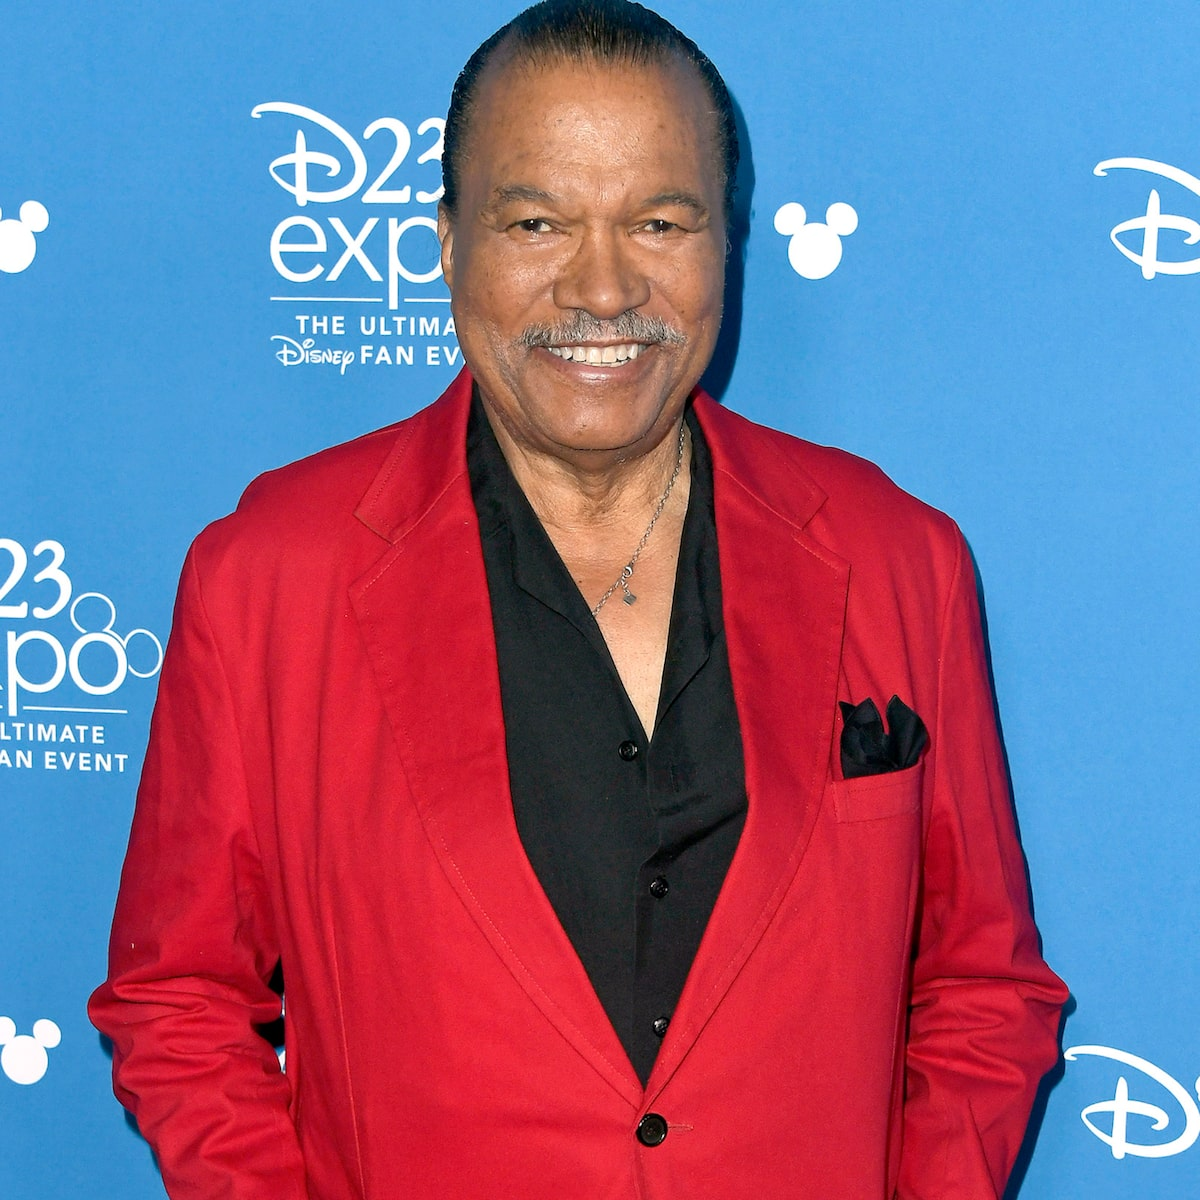 Billy Dee Williams Bio-Wiki, Age, Family, Relationships, Wives and Movies